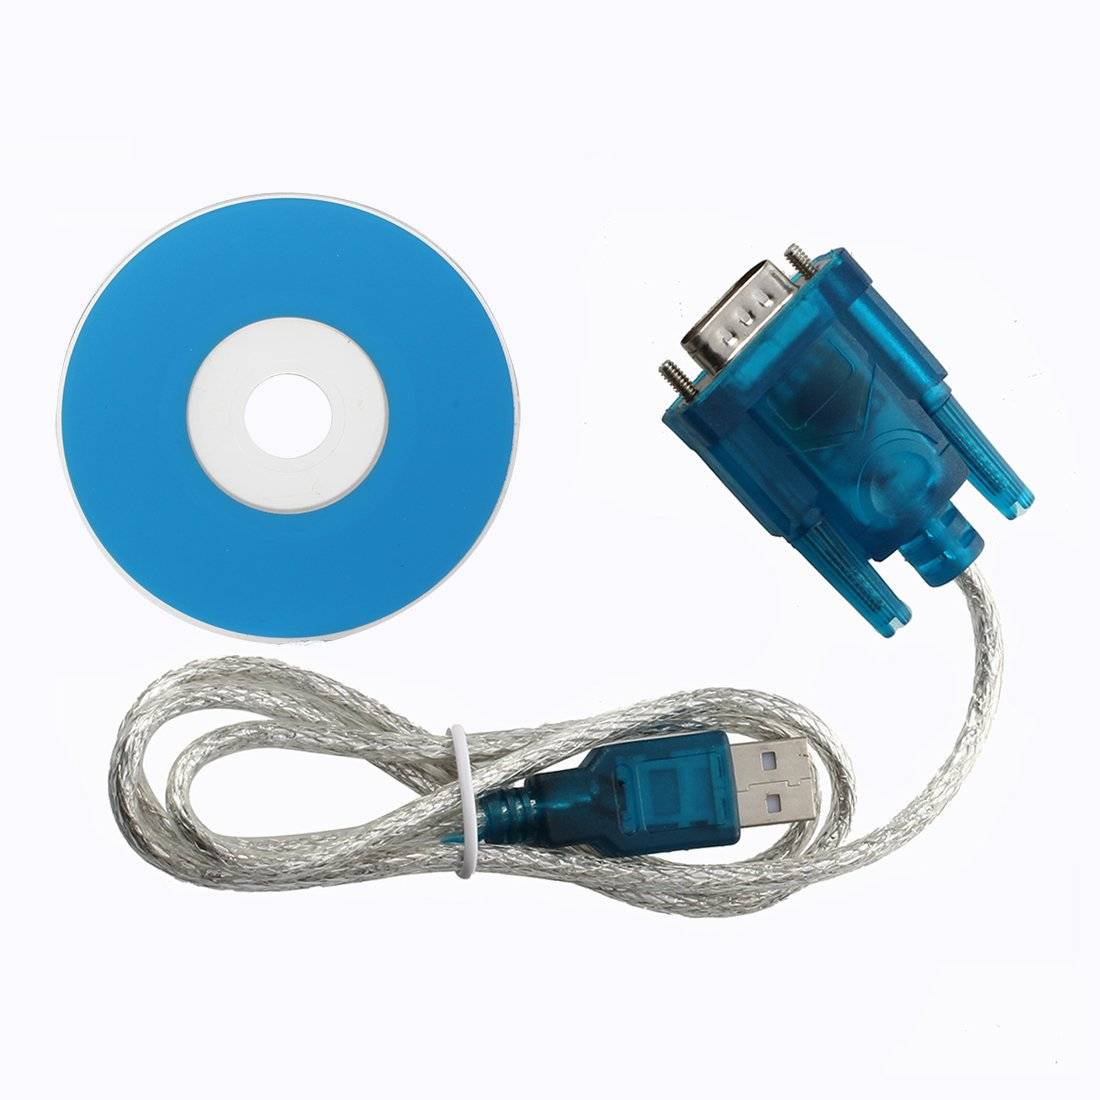 USB to 9-pin Serial Port Adapter - Buy USB to 9-pin Serial Port ...